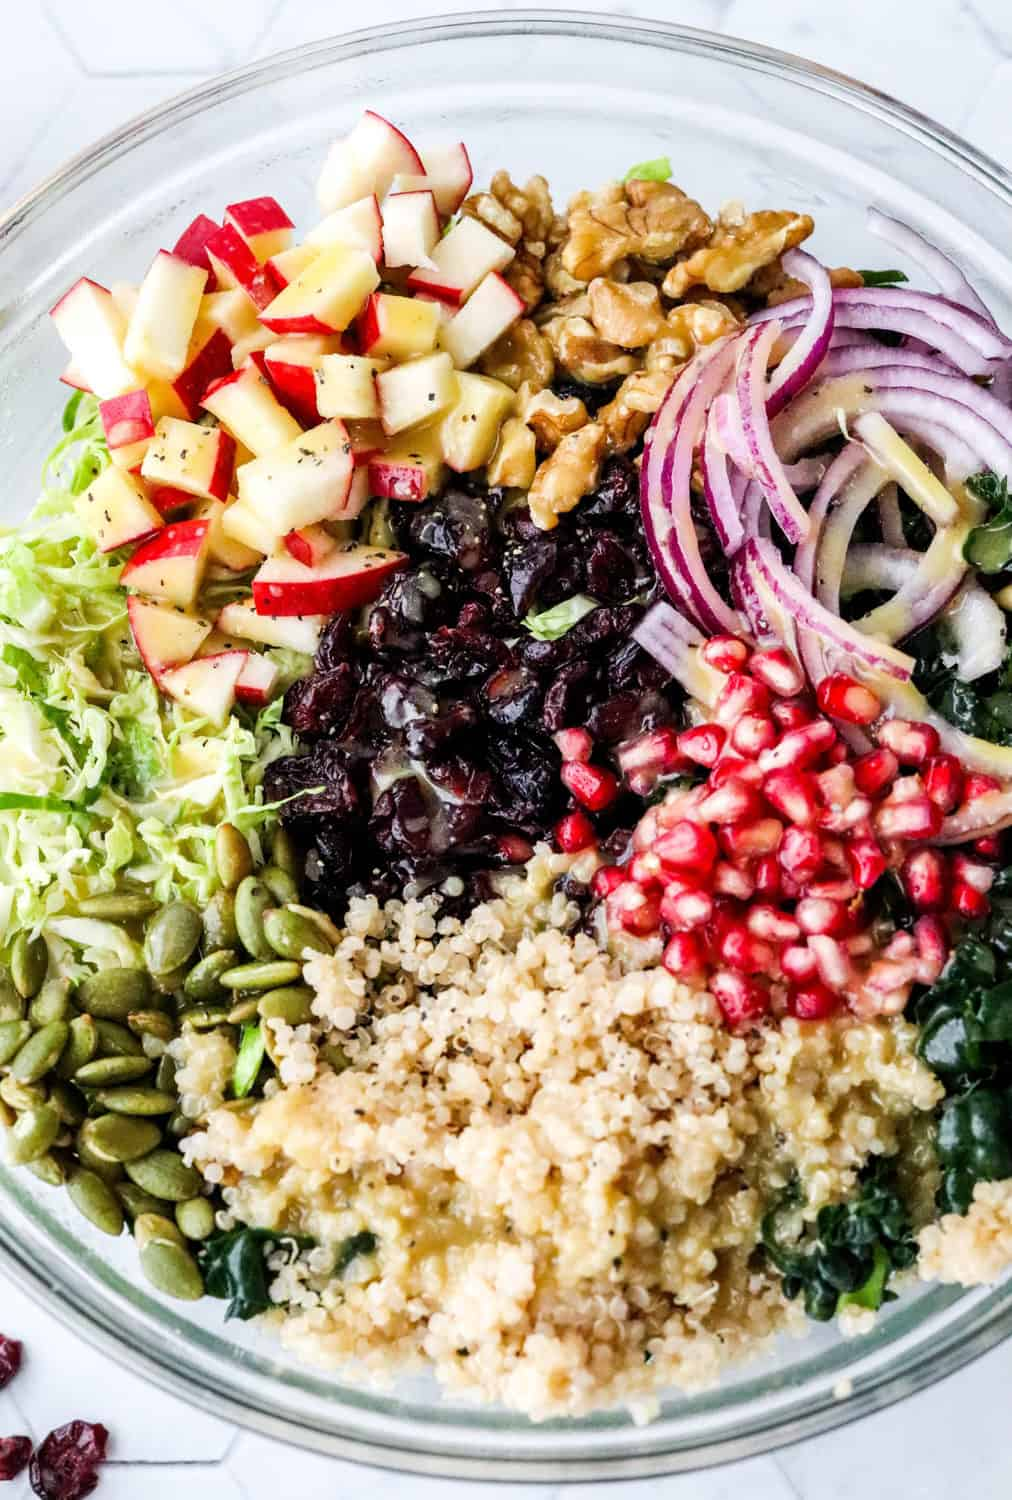 Large bowl filled with simple kale salad with quinoa, Brussel sprouts, sliced purple onion, pomegranate seeds, cranberries, chopped apple and walnuts